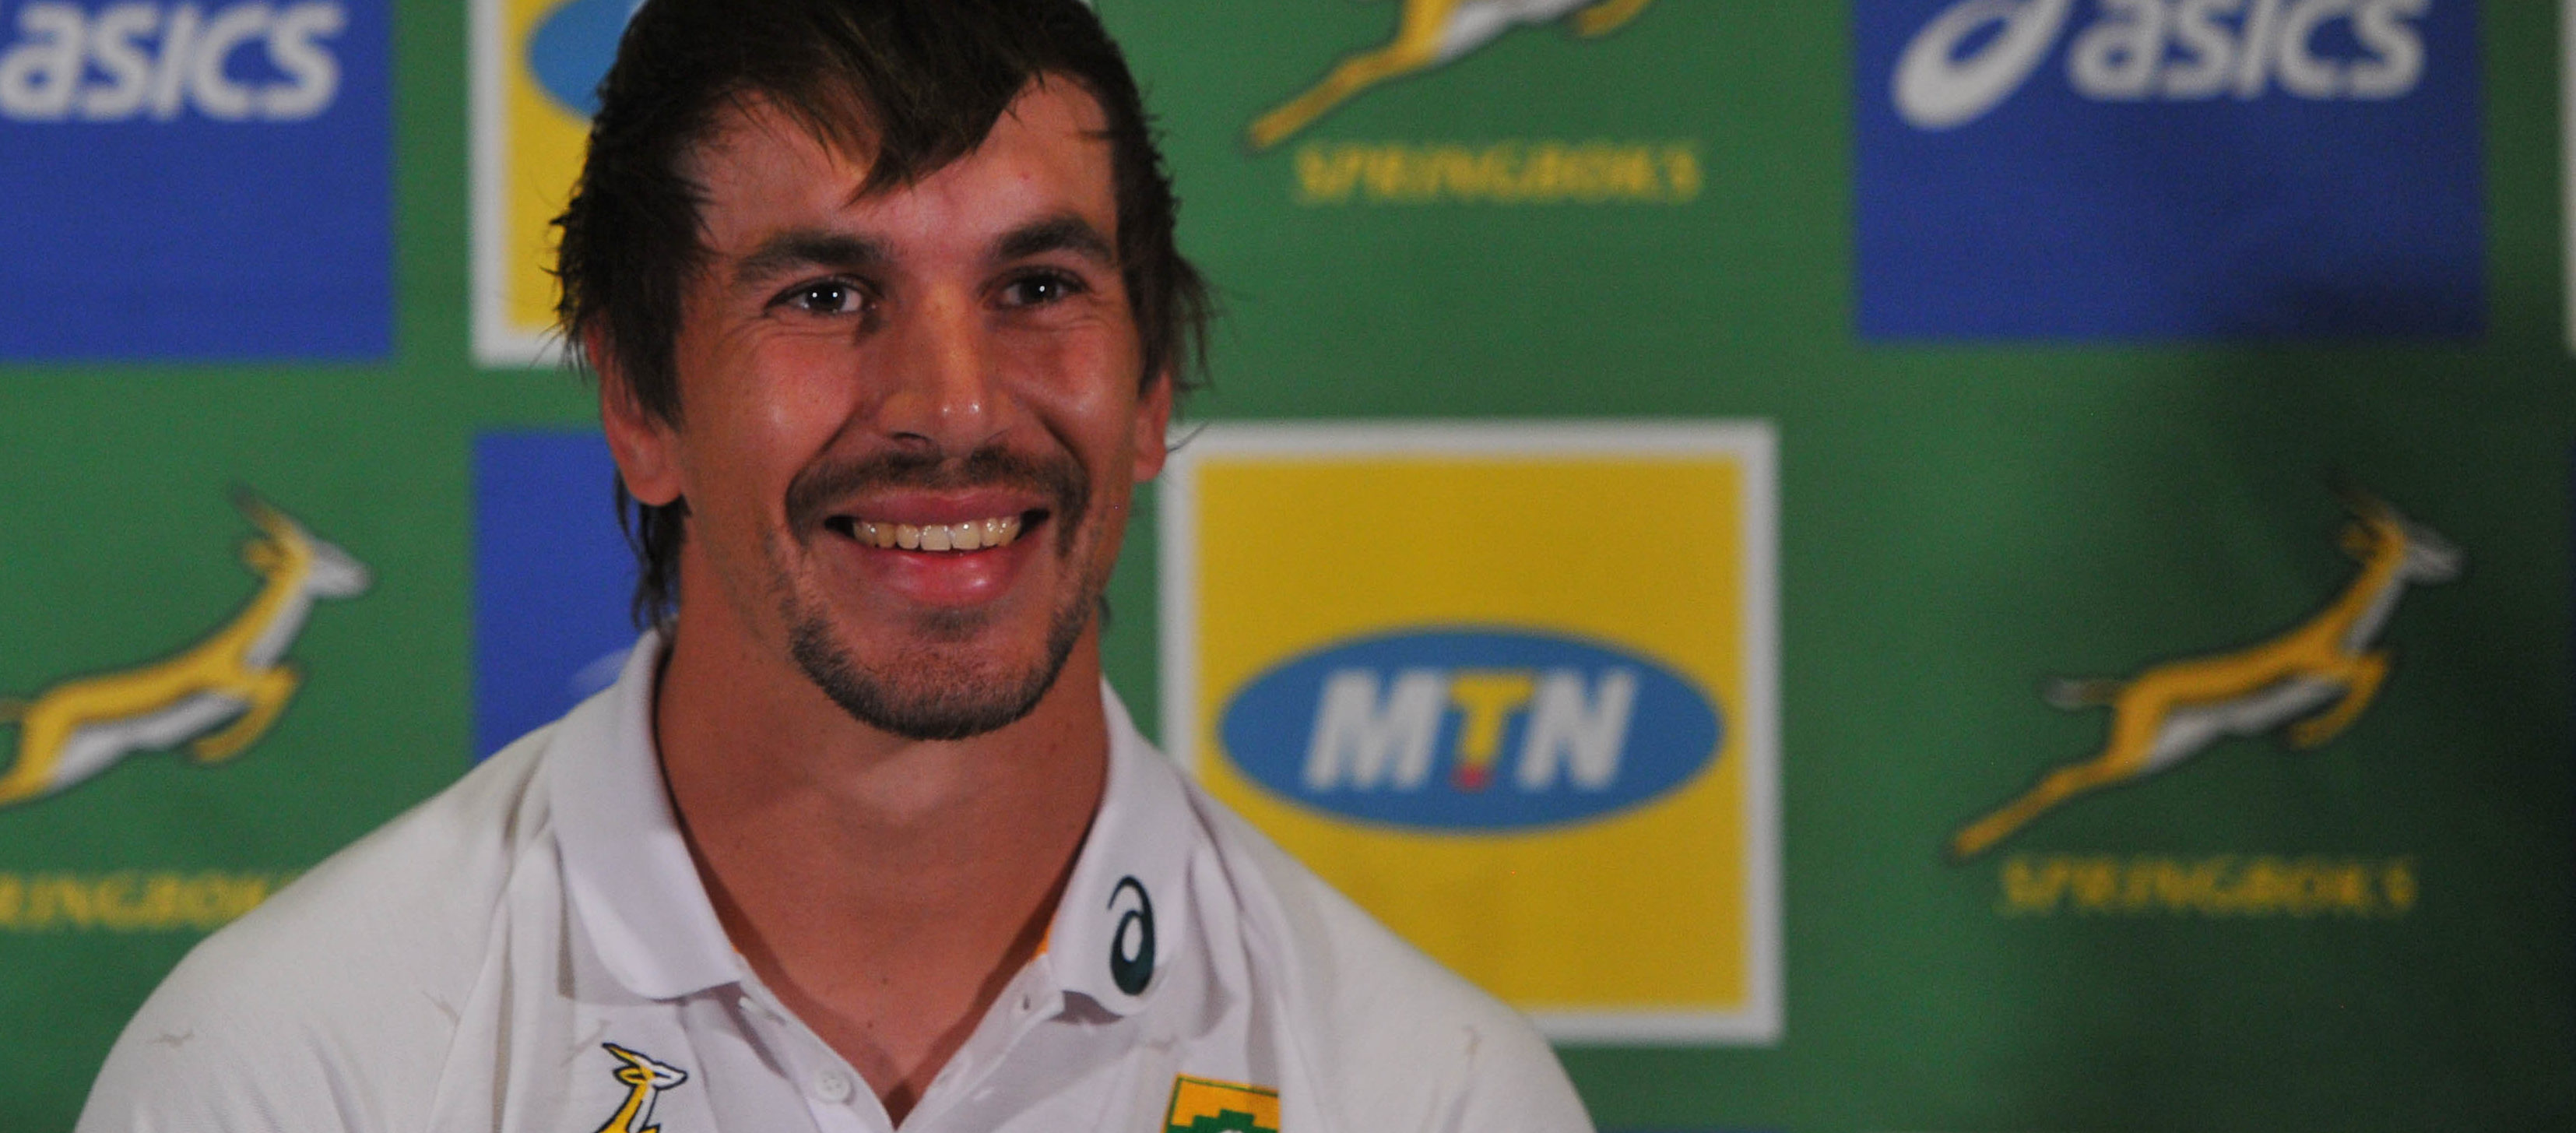 Rugby Championship 2019: South Africa vs Australia